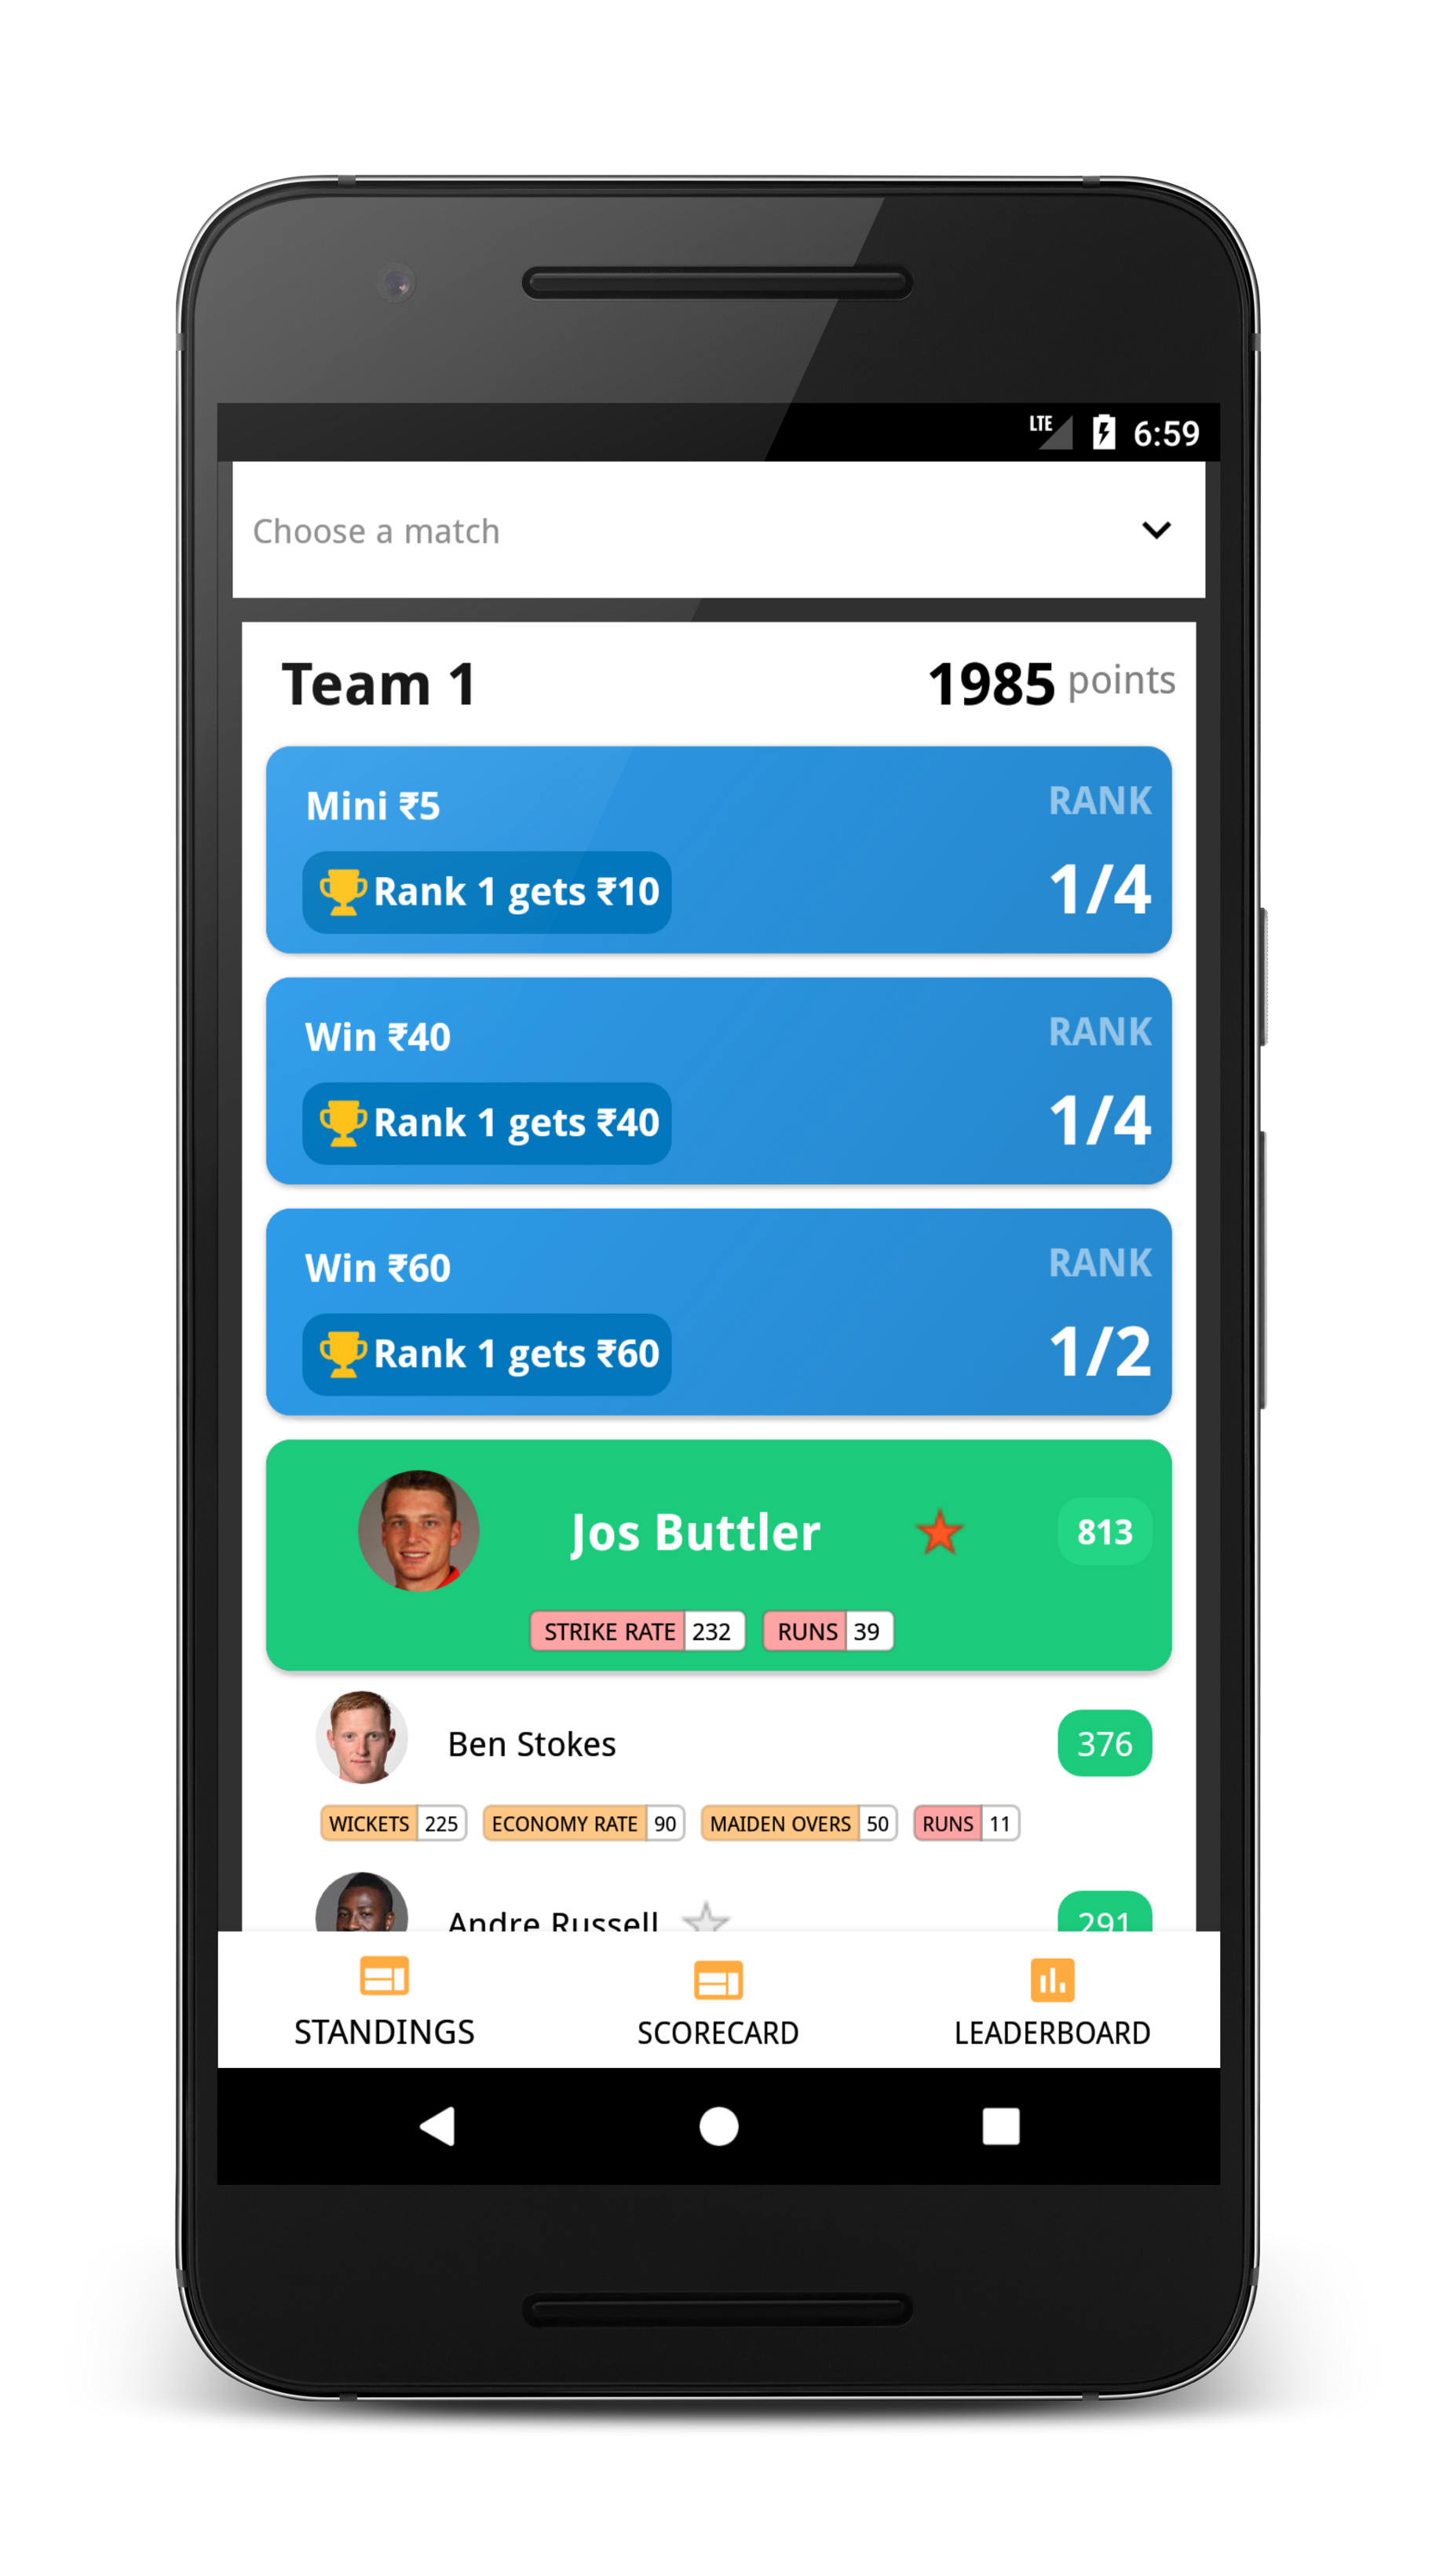 5 Tips to make easy money from Fantasy Cricket Apps